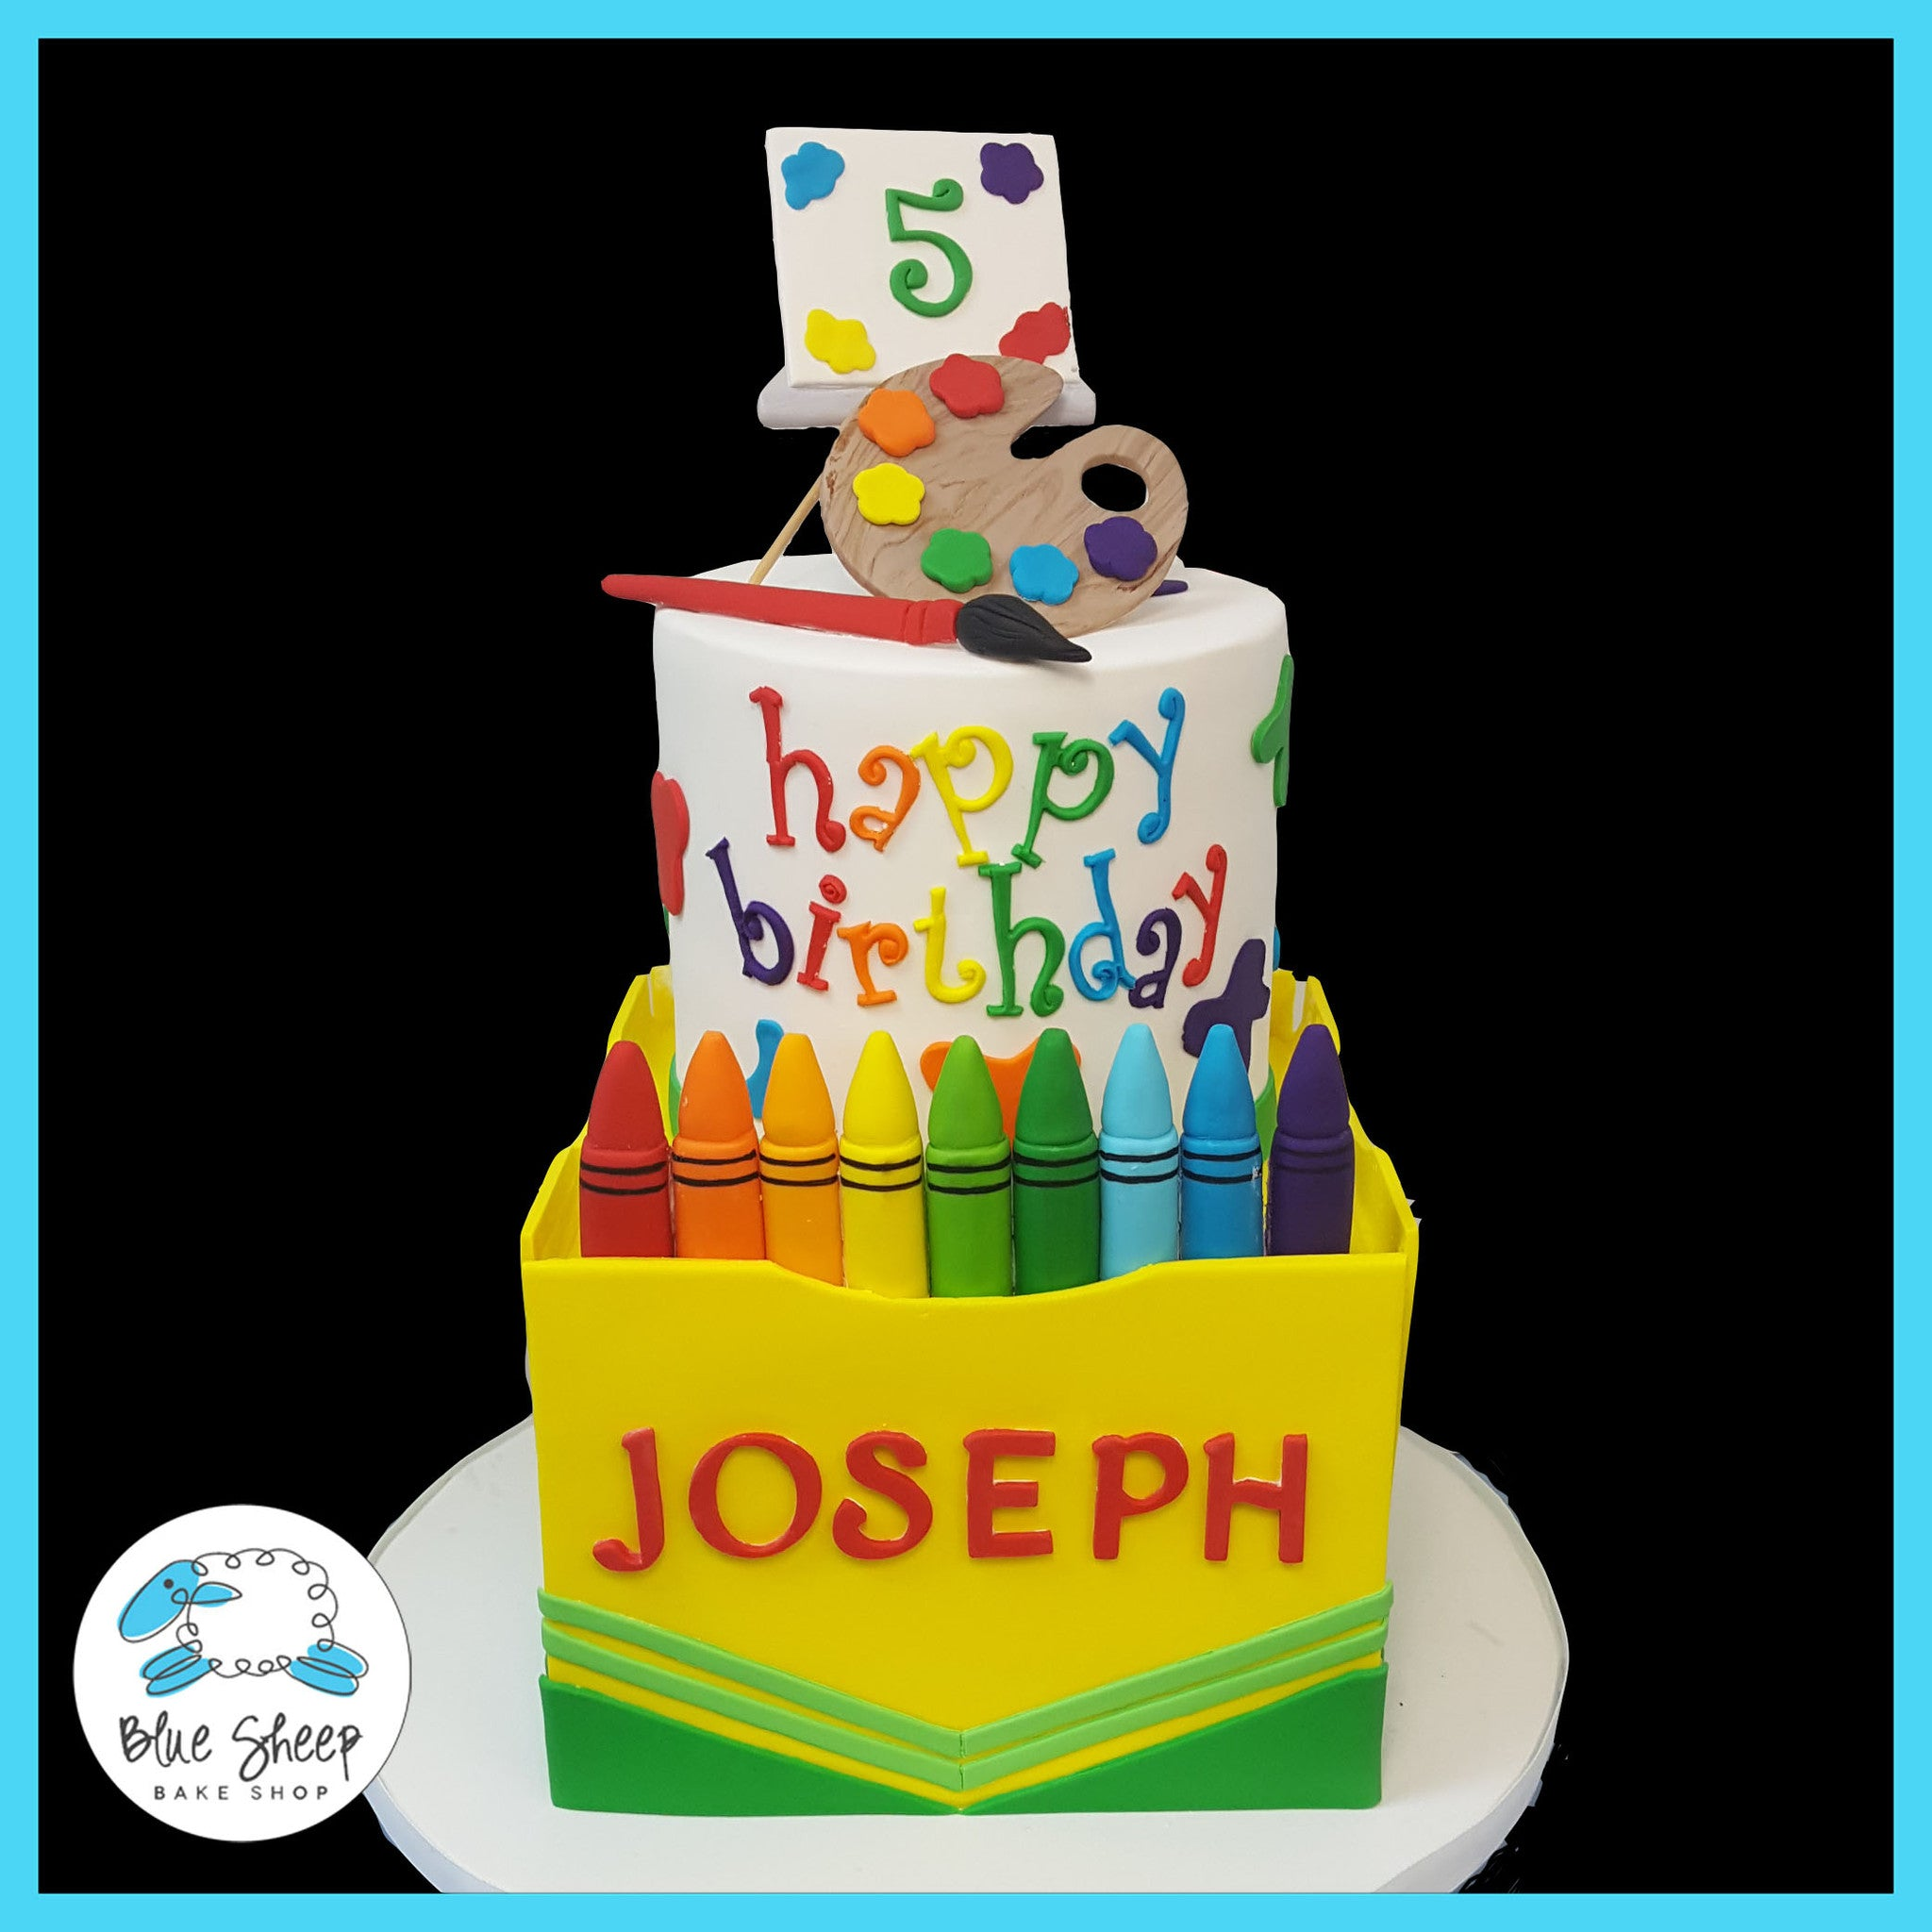 Crayon Birthday Cake NJ | Blue Sheep Bake Shop